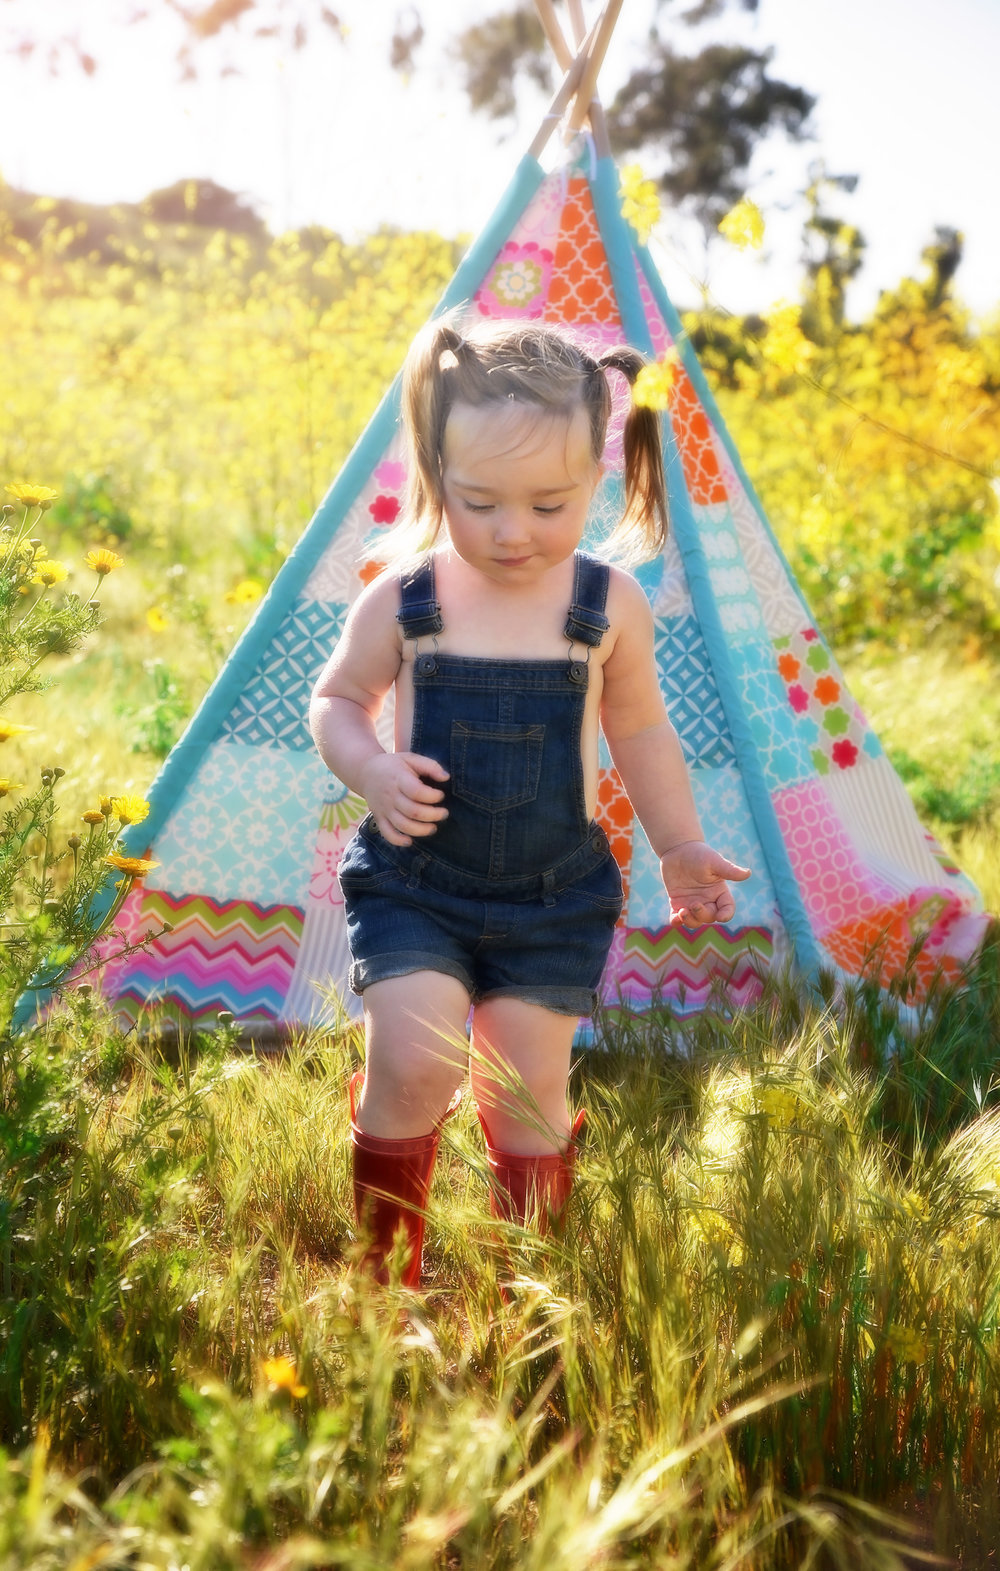 Child Photography Portraits | Lifestyle Portrait Photography | Lacey O